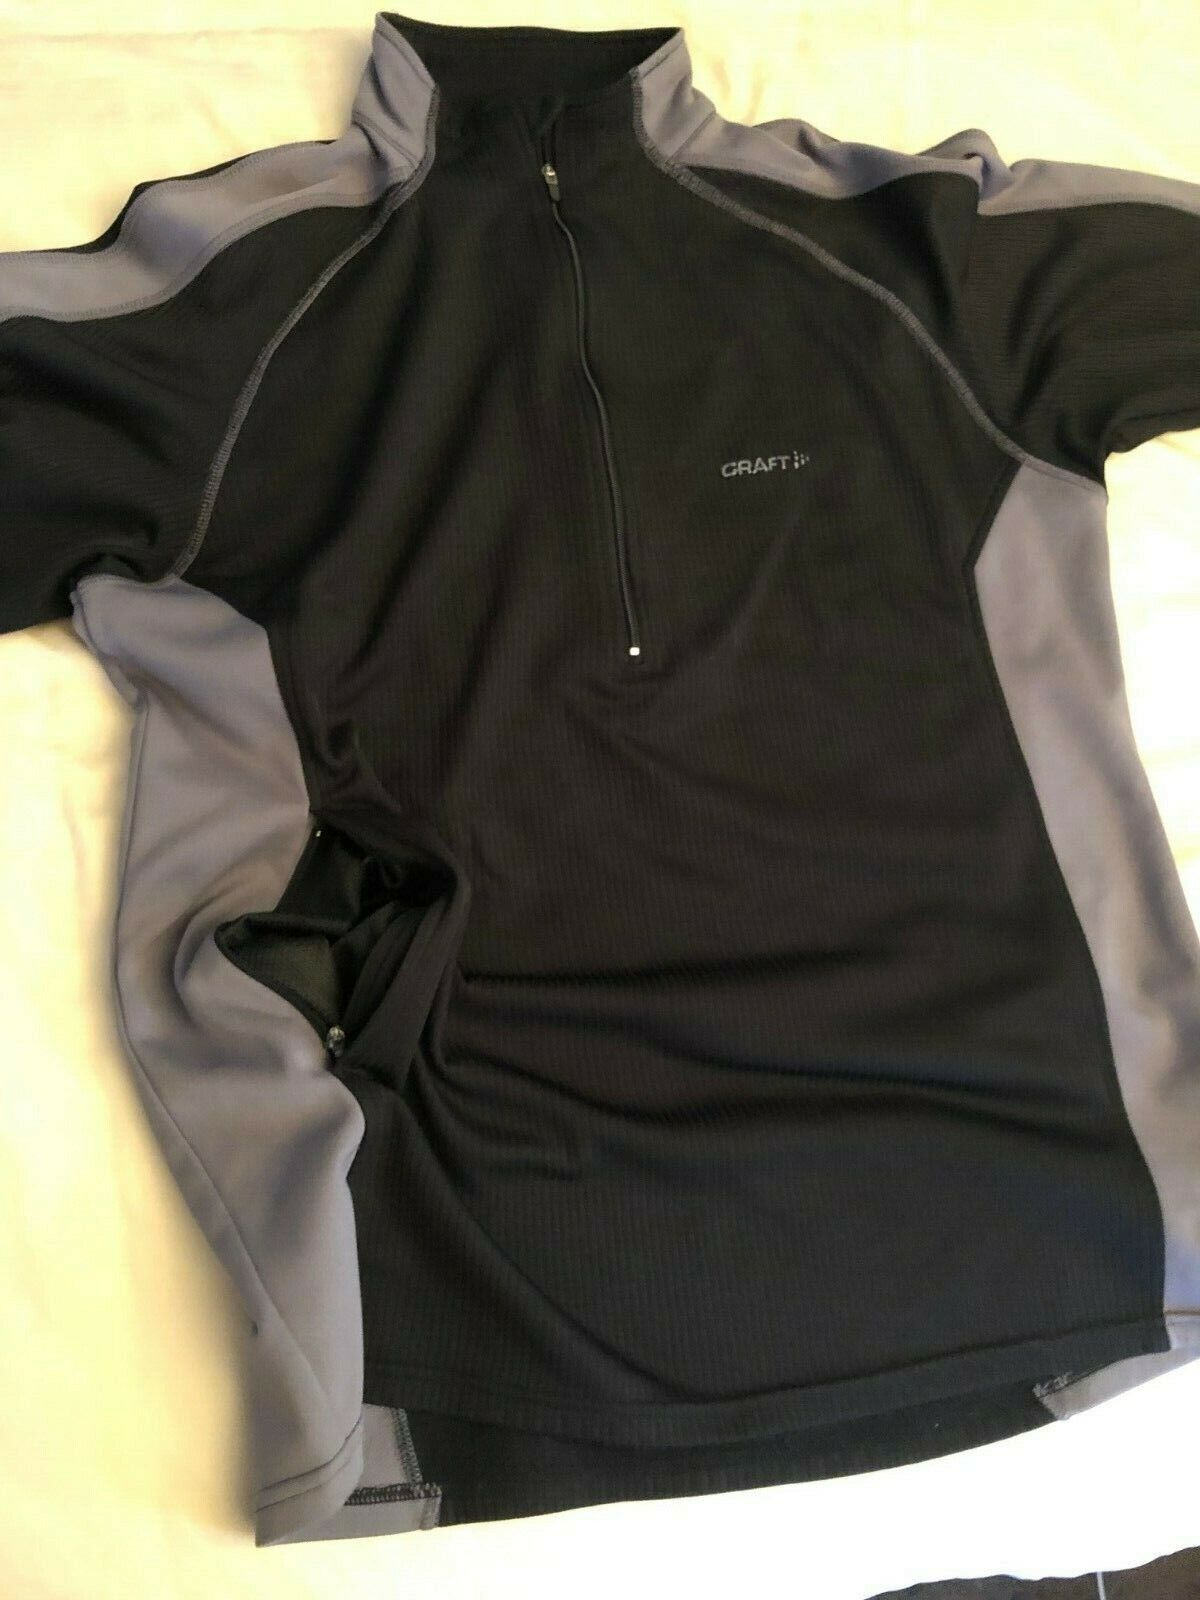 CRAFT  L2 Insulation Top Jersey Fleece Mens XL LoWeReD PriCE  fast shipping